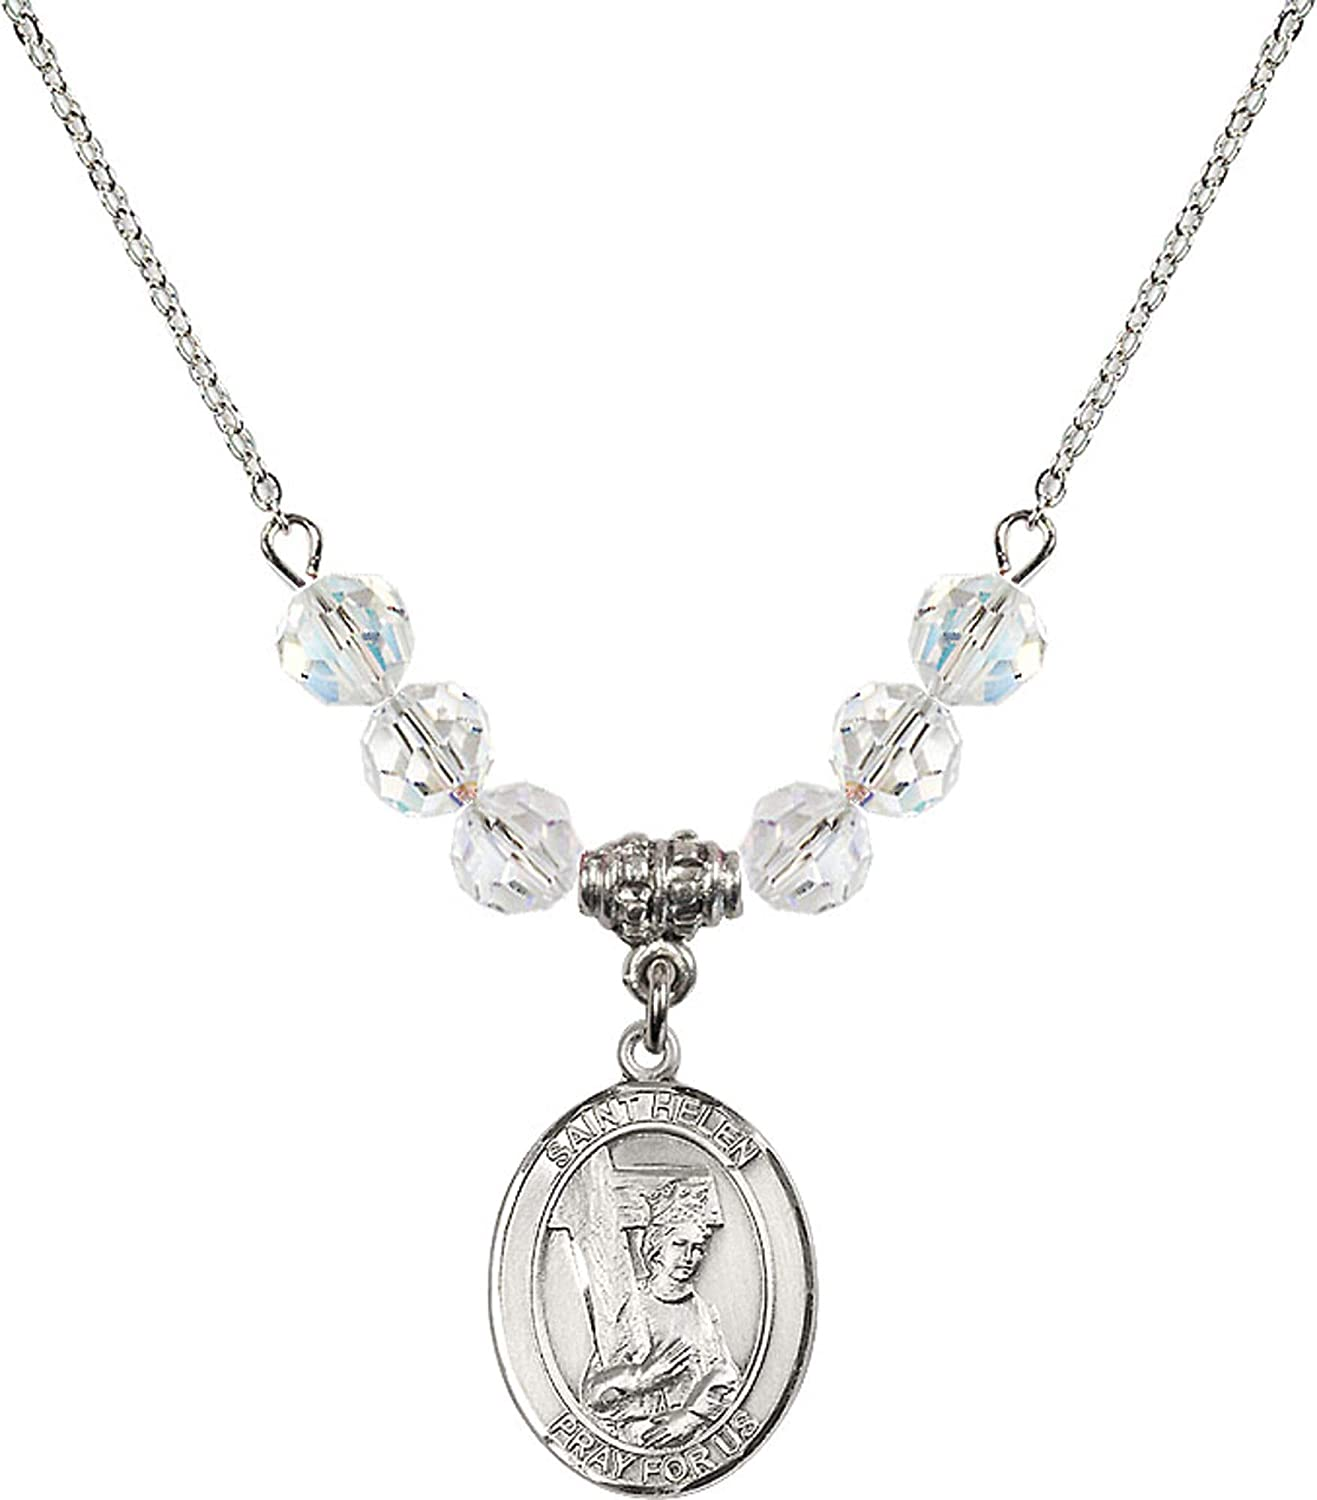 Bonyak Jewelry 18 Inch Rhodium Plated Necklace w// 6mm White April Birth Month Stone Beads and Saint Helen Charm